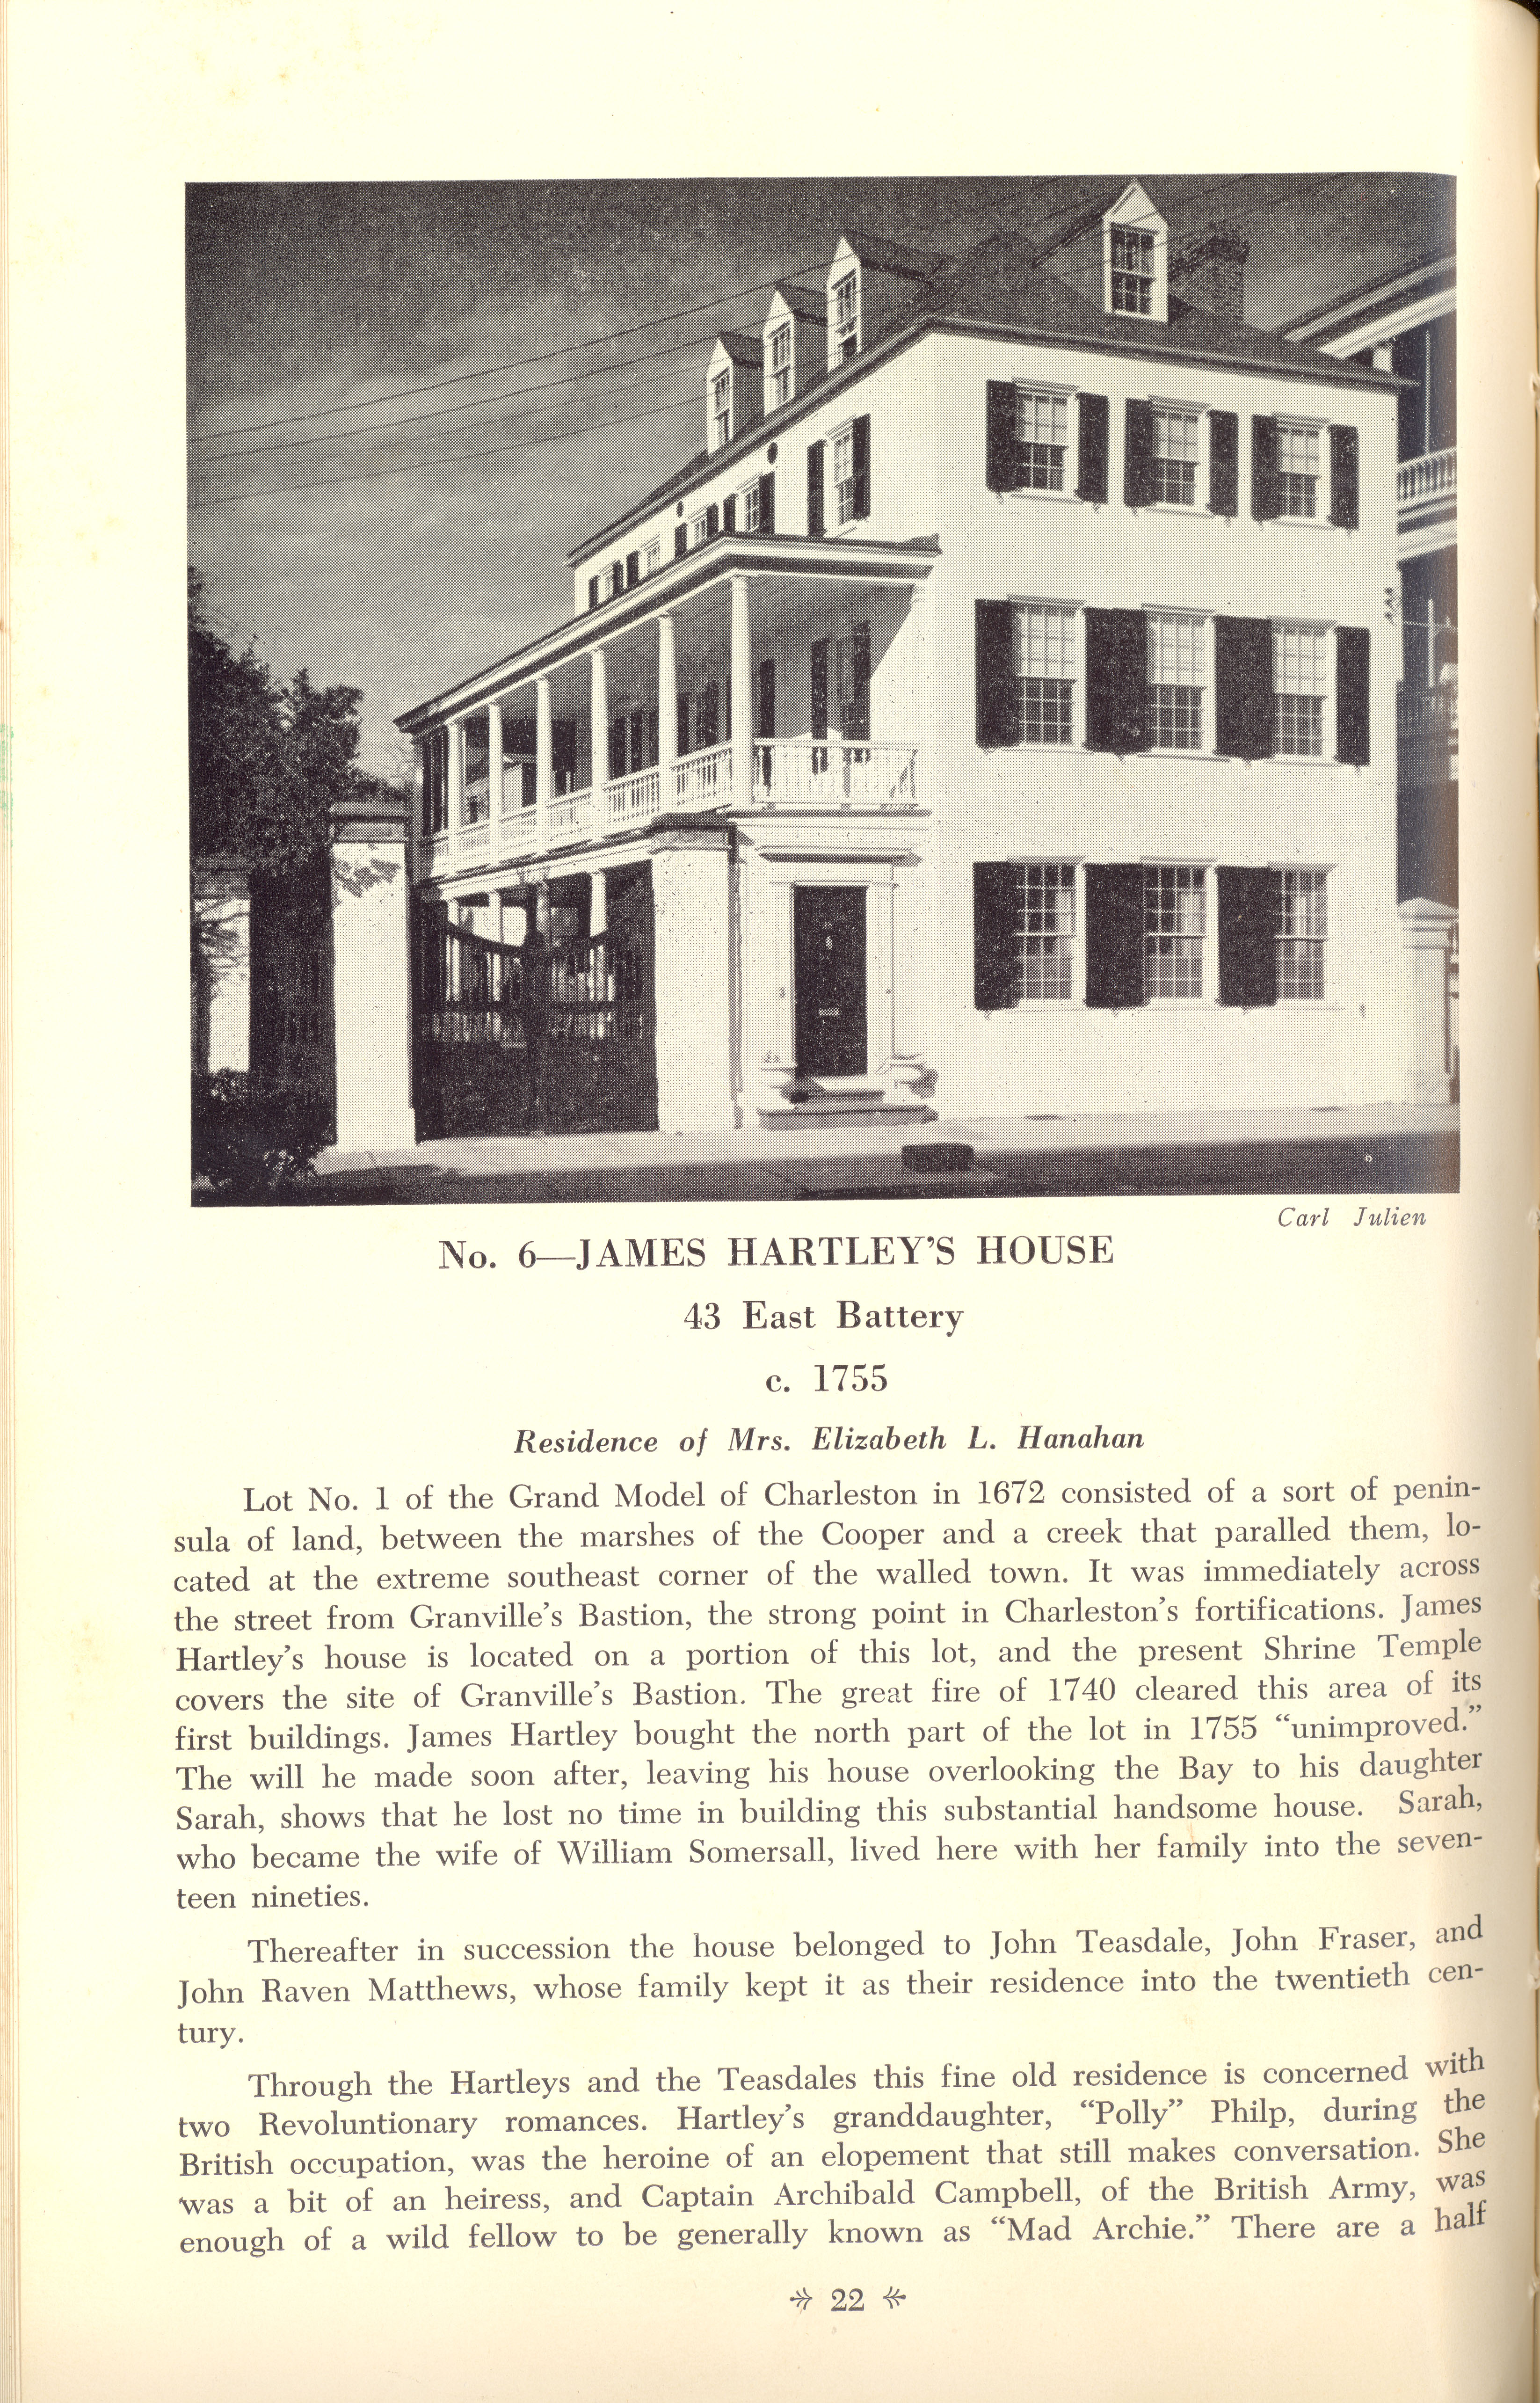 Page 22:  No. 6 - James Hartley's House, 43 East Battery, c. 1755